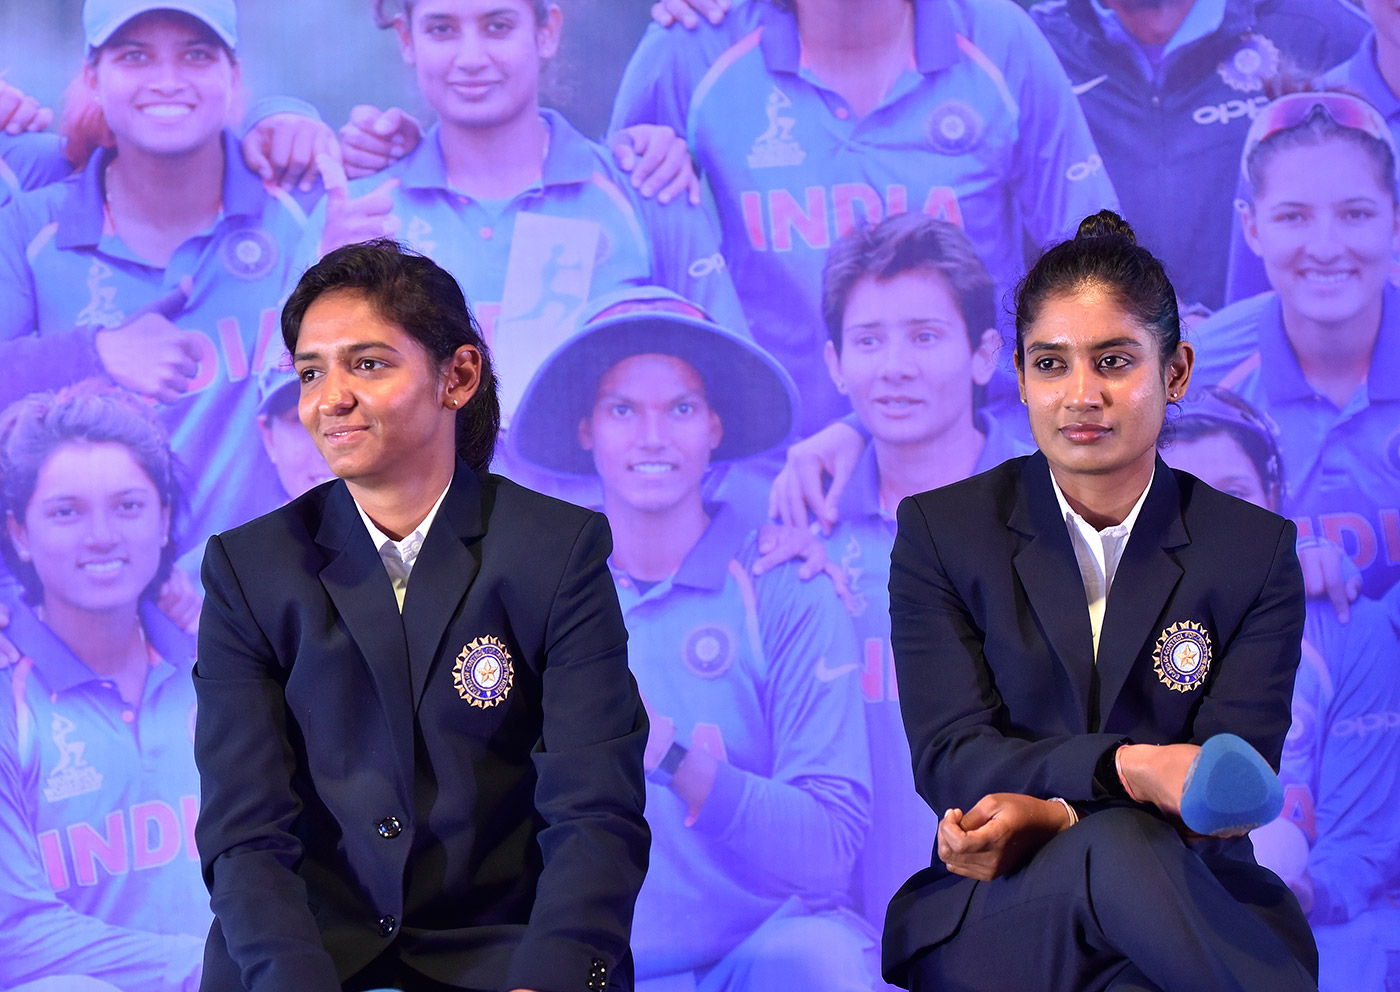 With predecessor Raj. 'Until my late teens, I had no idea if India had a women's team, let alone [knowing about] Jhulu <i>di</i> and Mithali <i>di</i> playing the World Cup'